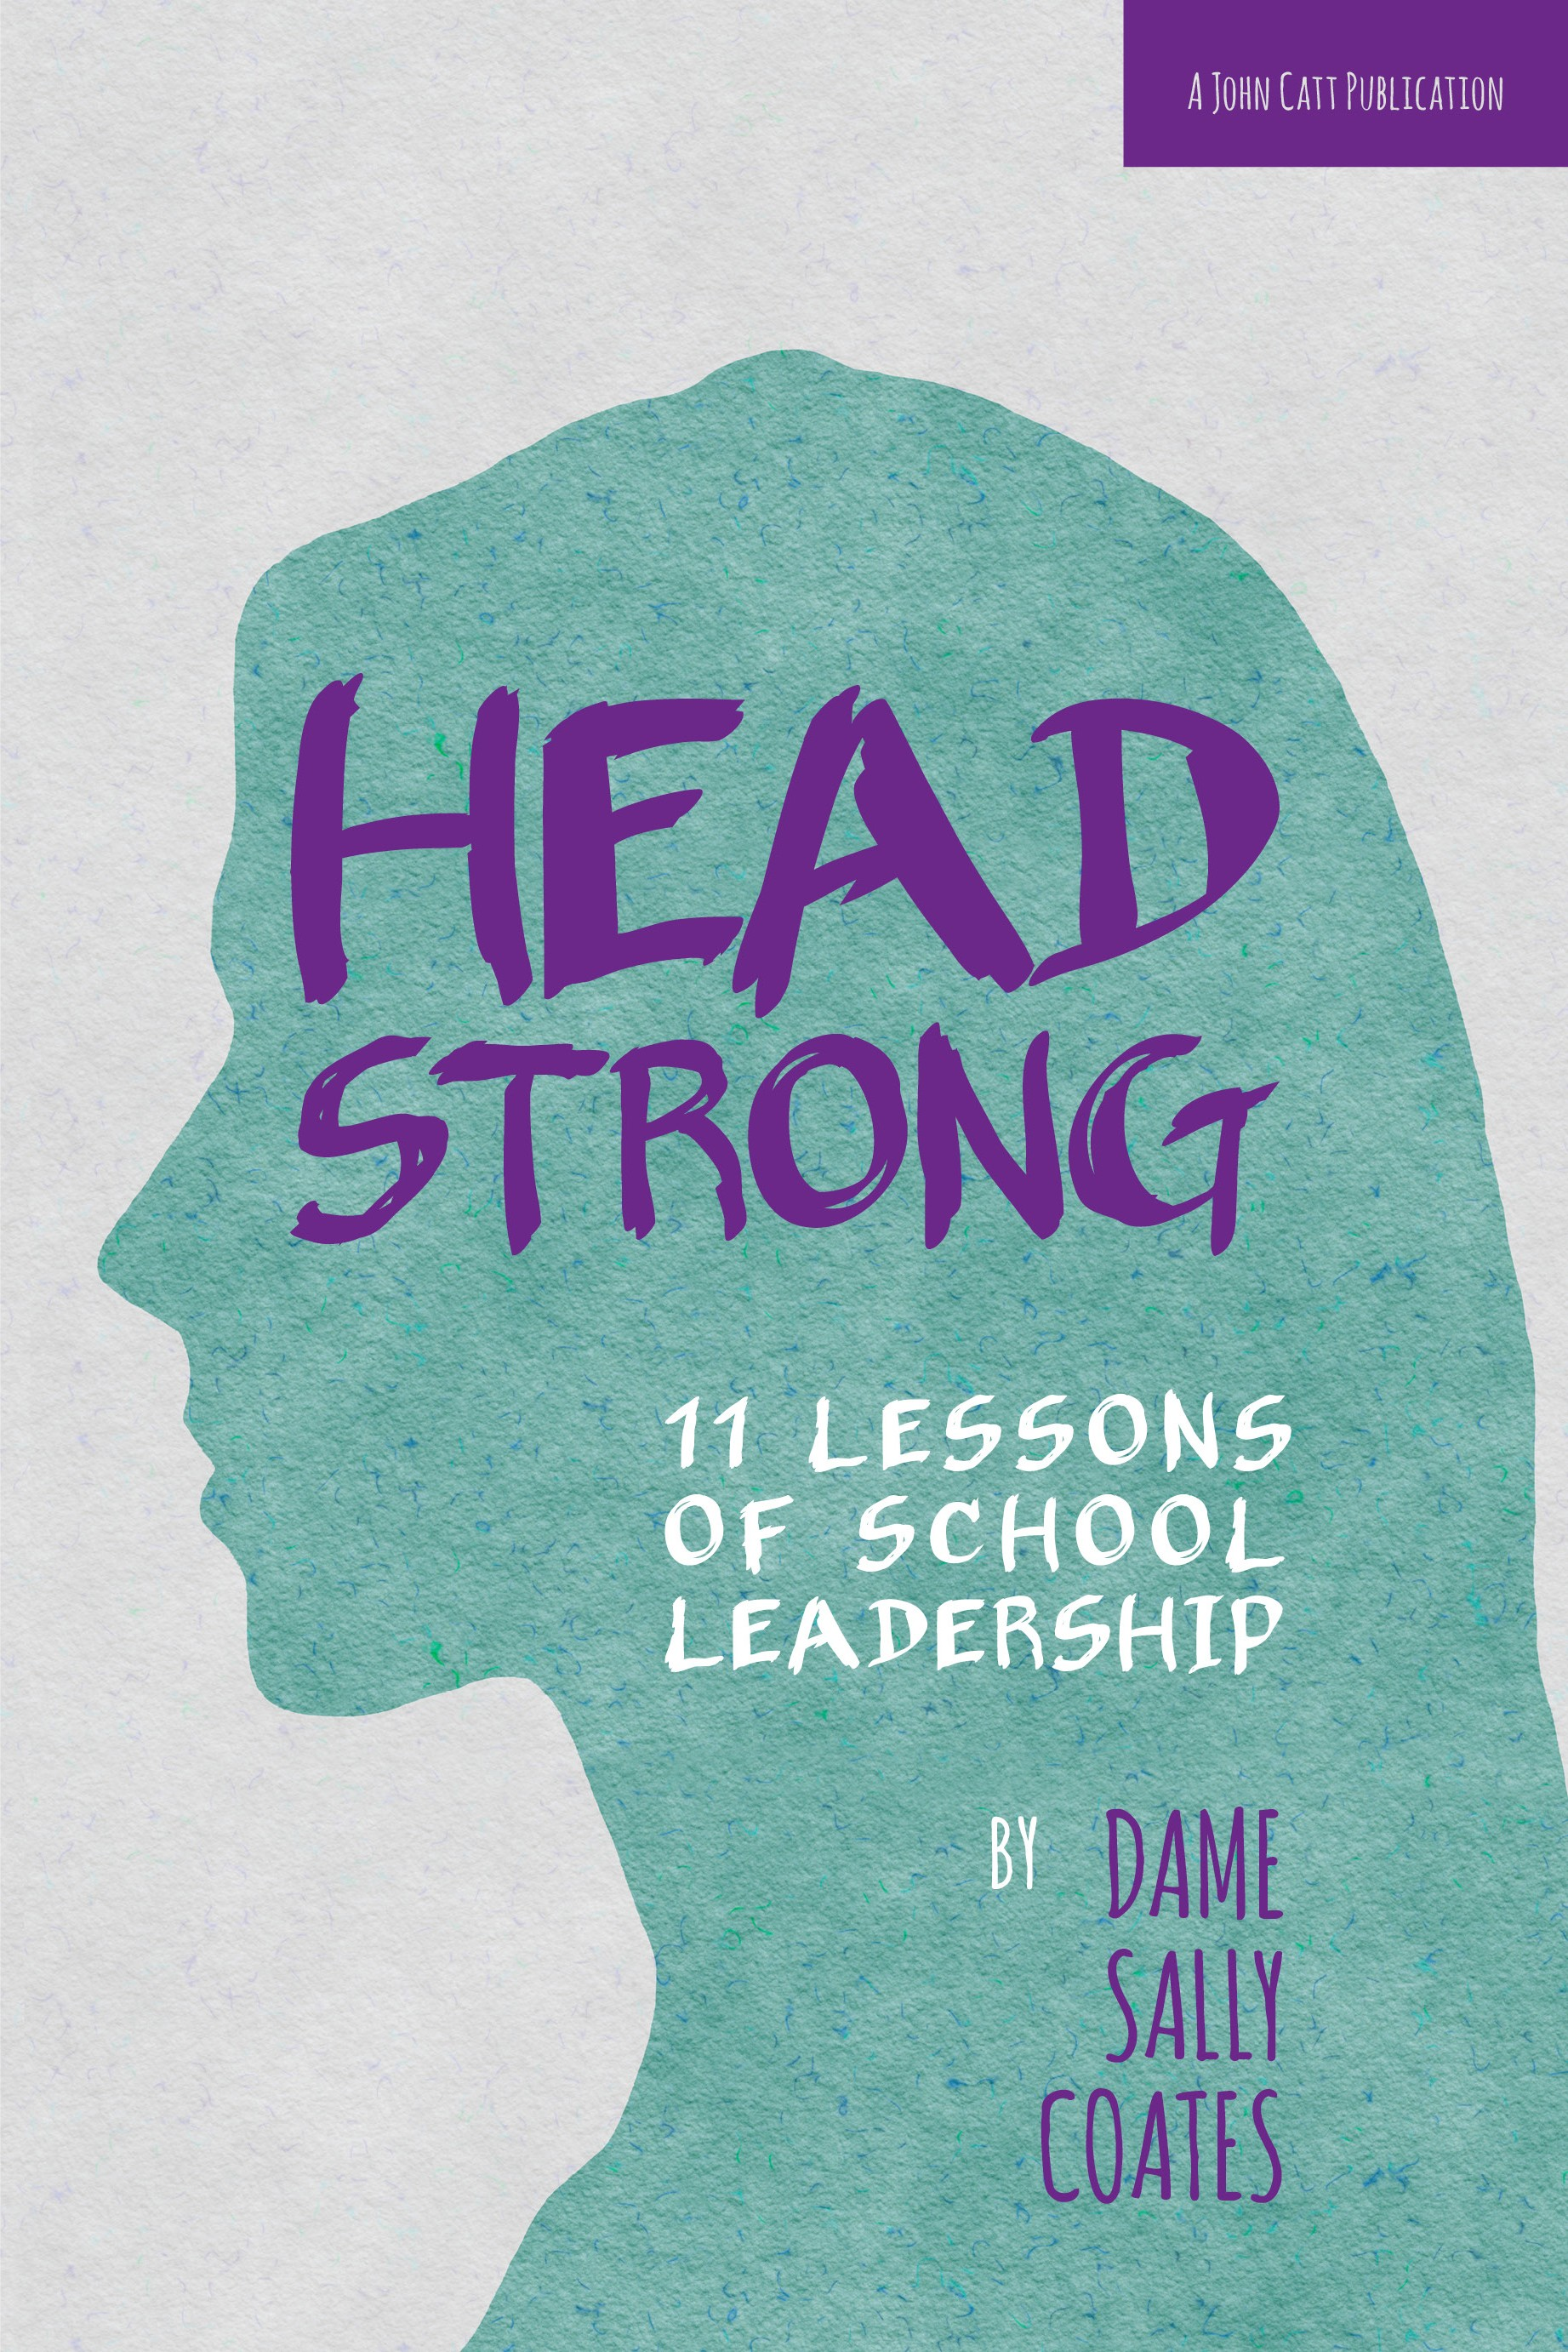 Headstrong: 11 Lessons of School Leadership